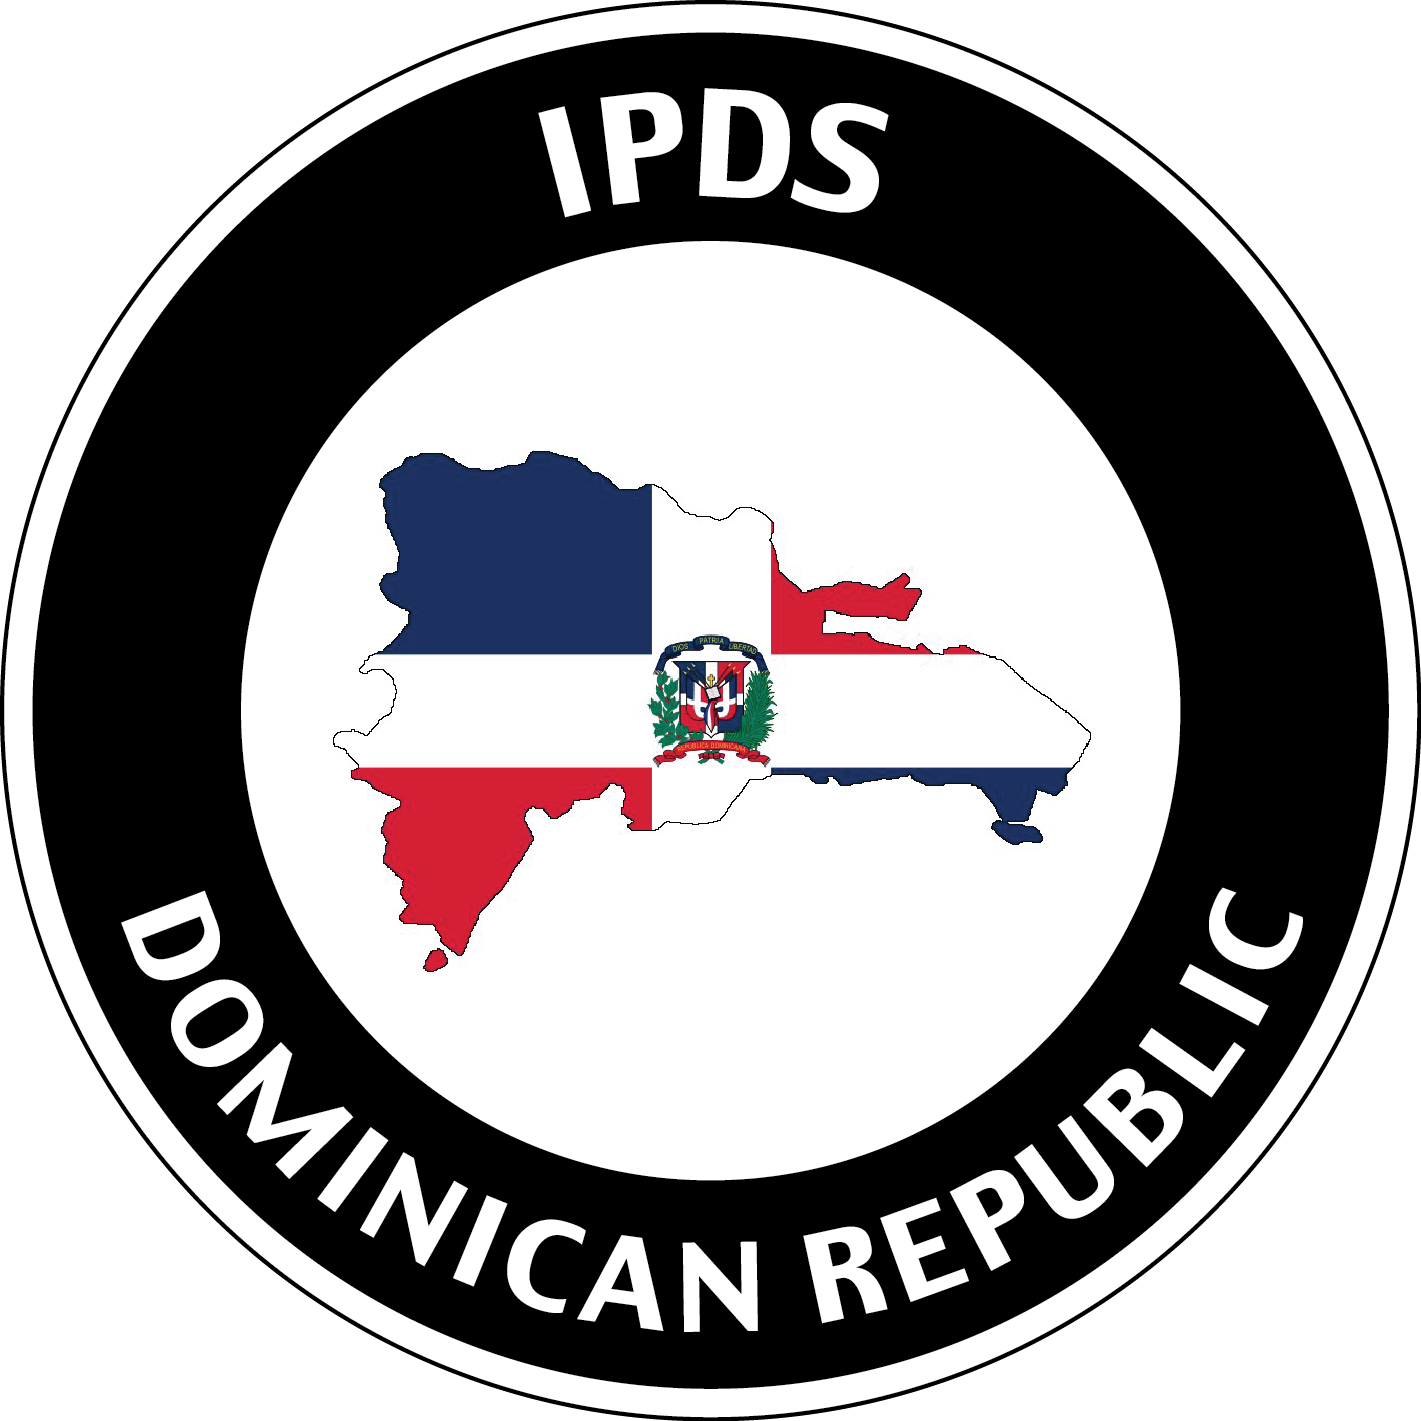 IPDS Dominican Republic icon with country and flag